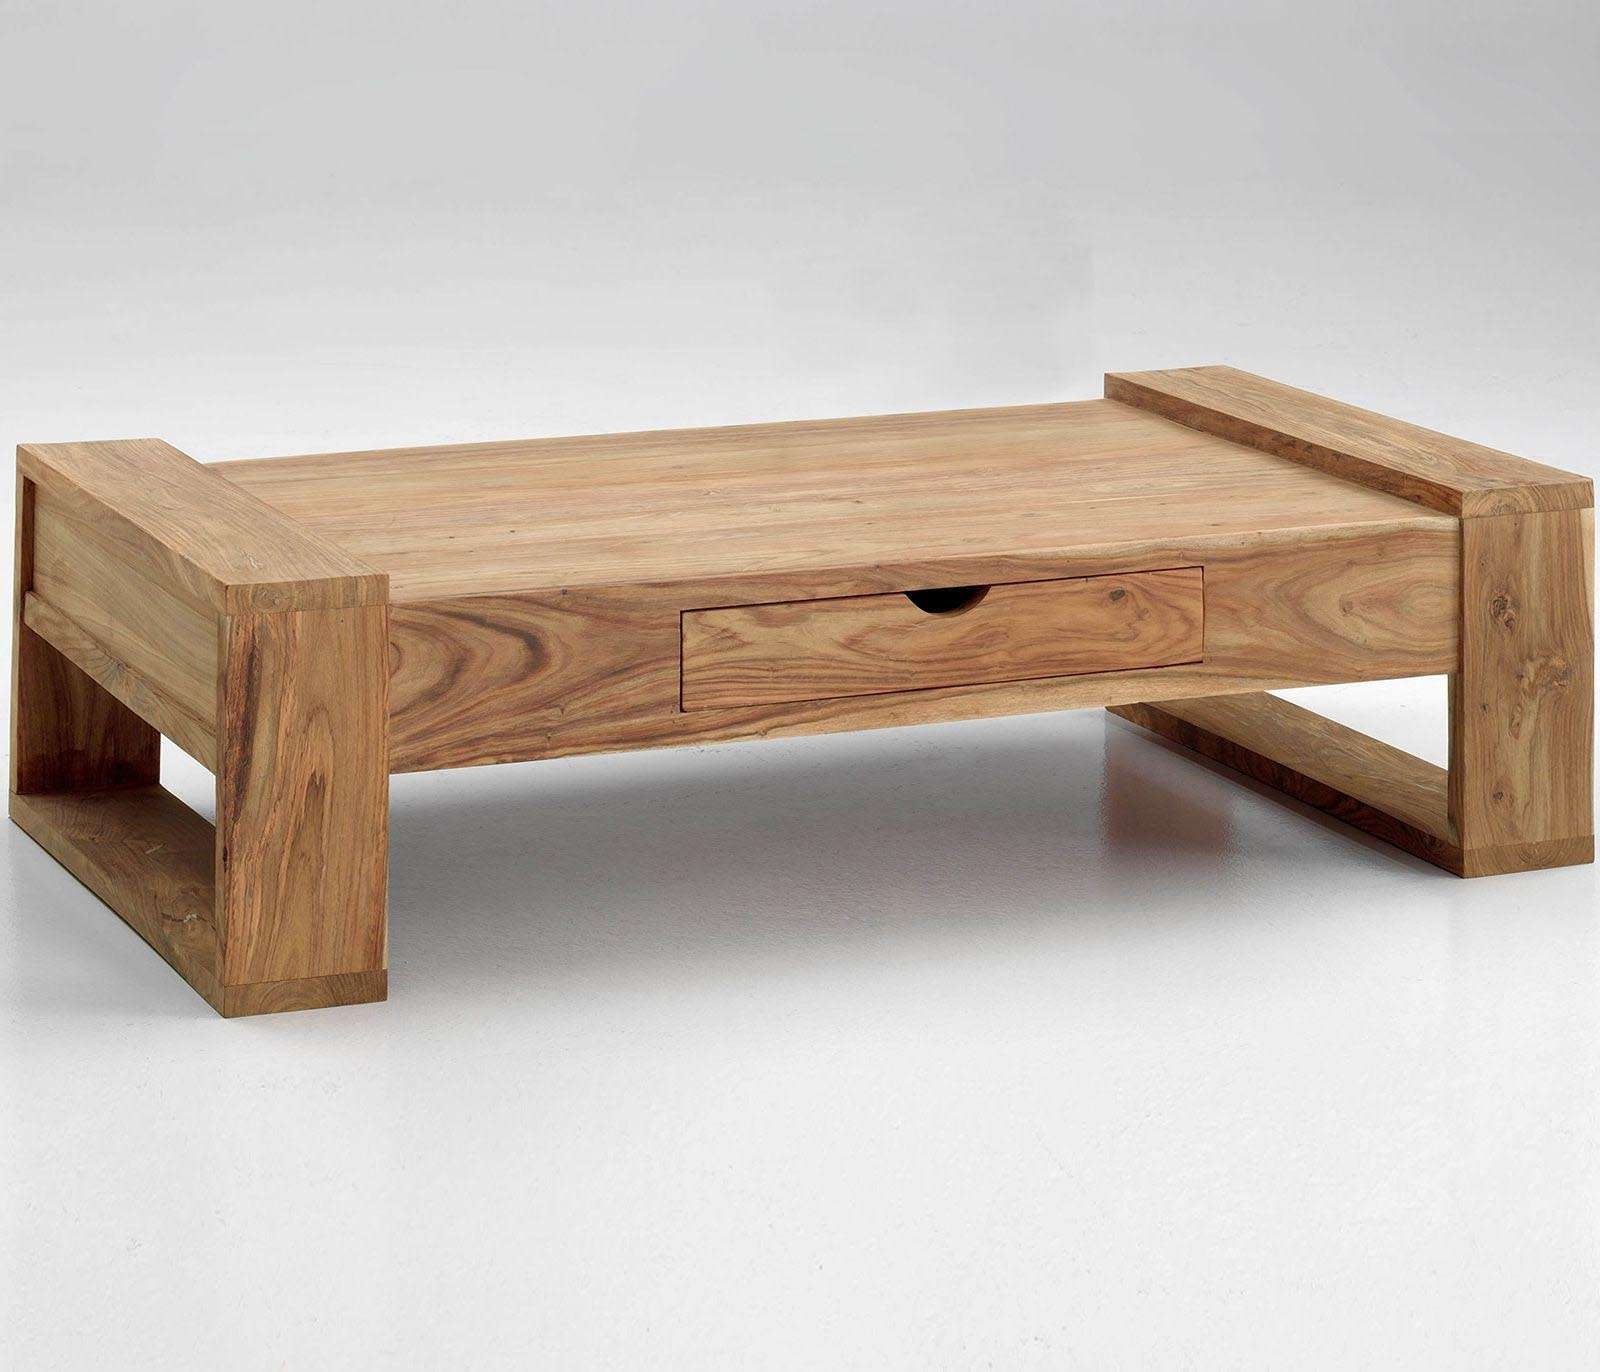 Coffee Table Design Ideas In Preferred Low Wooden Coffee Tables (View 4 of 20)